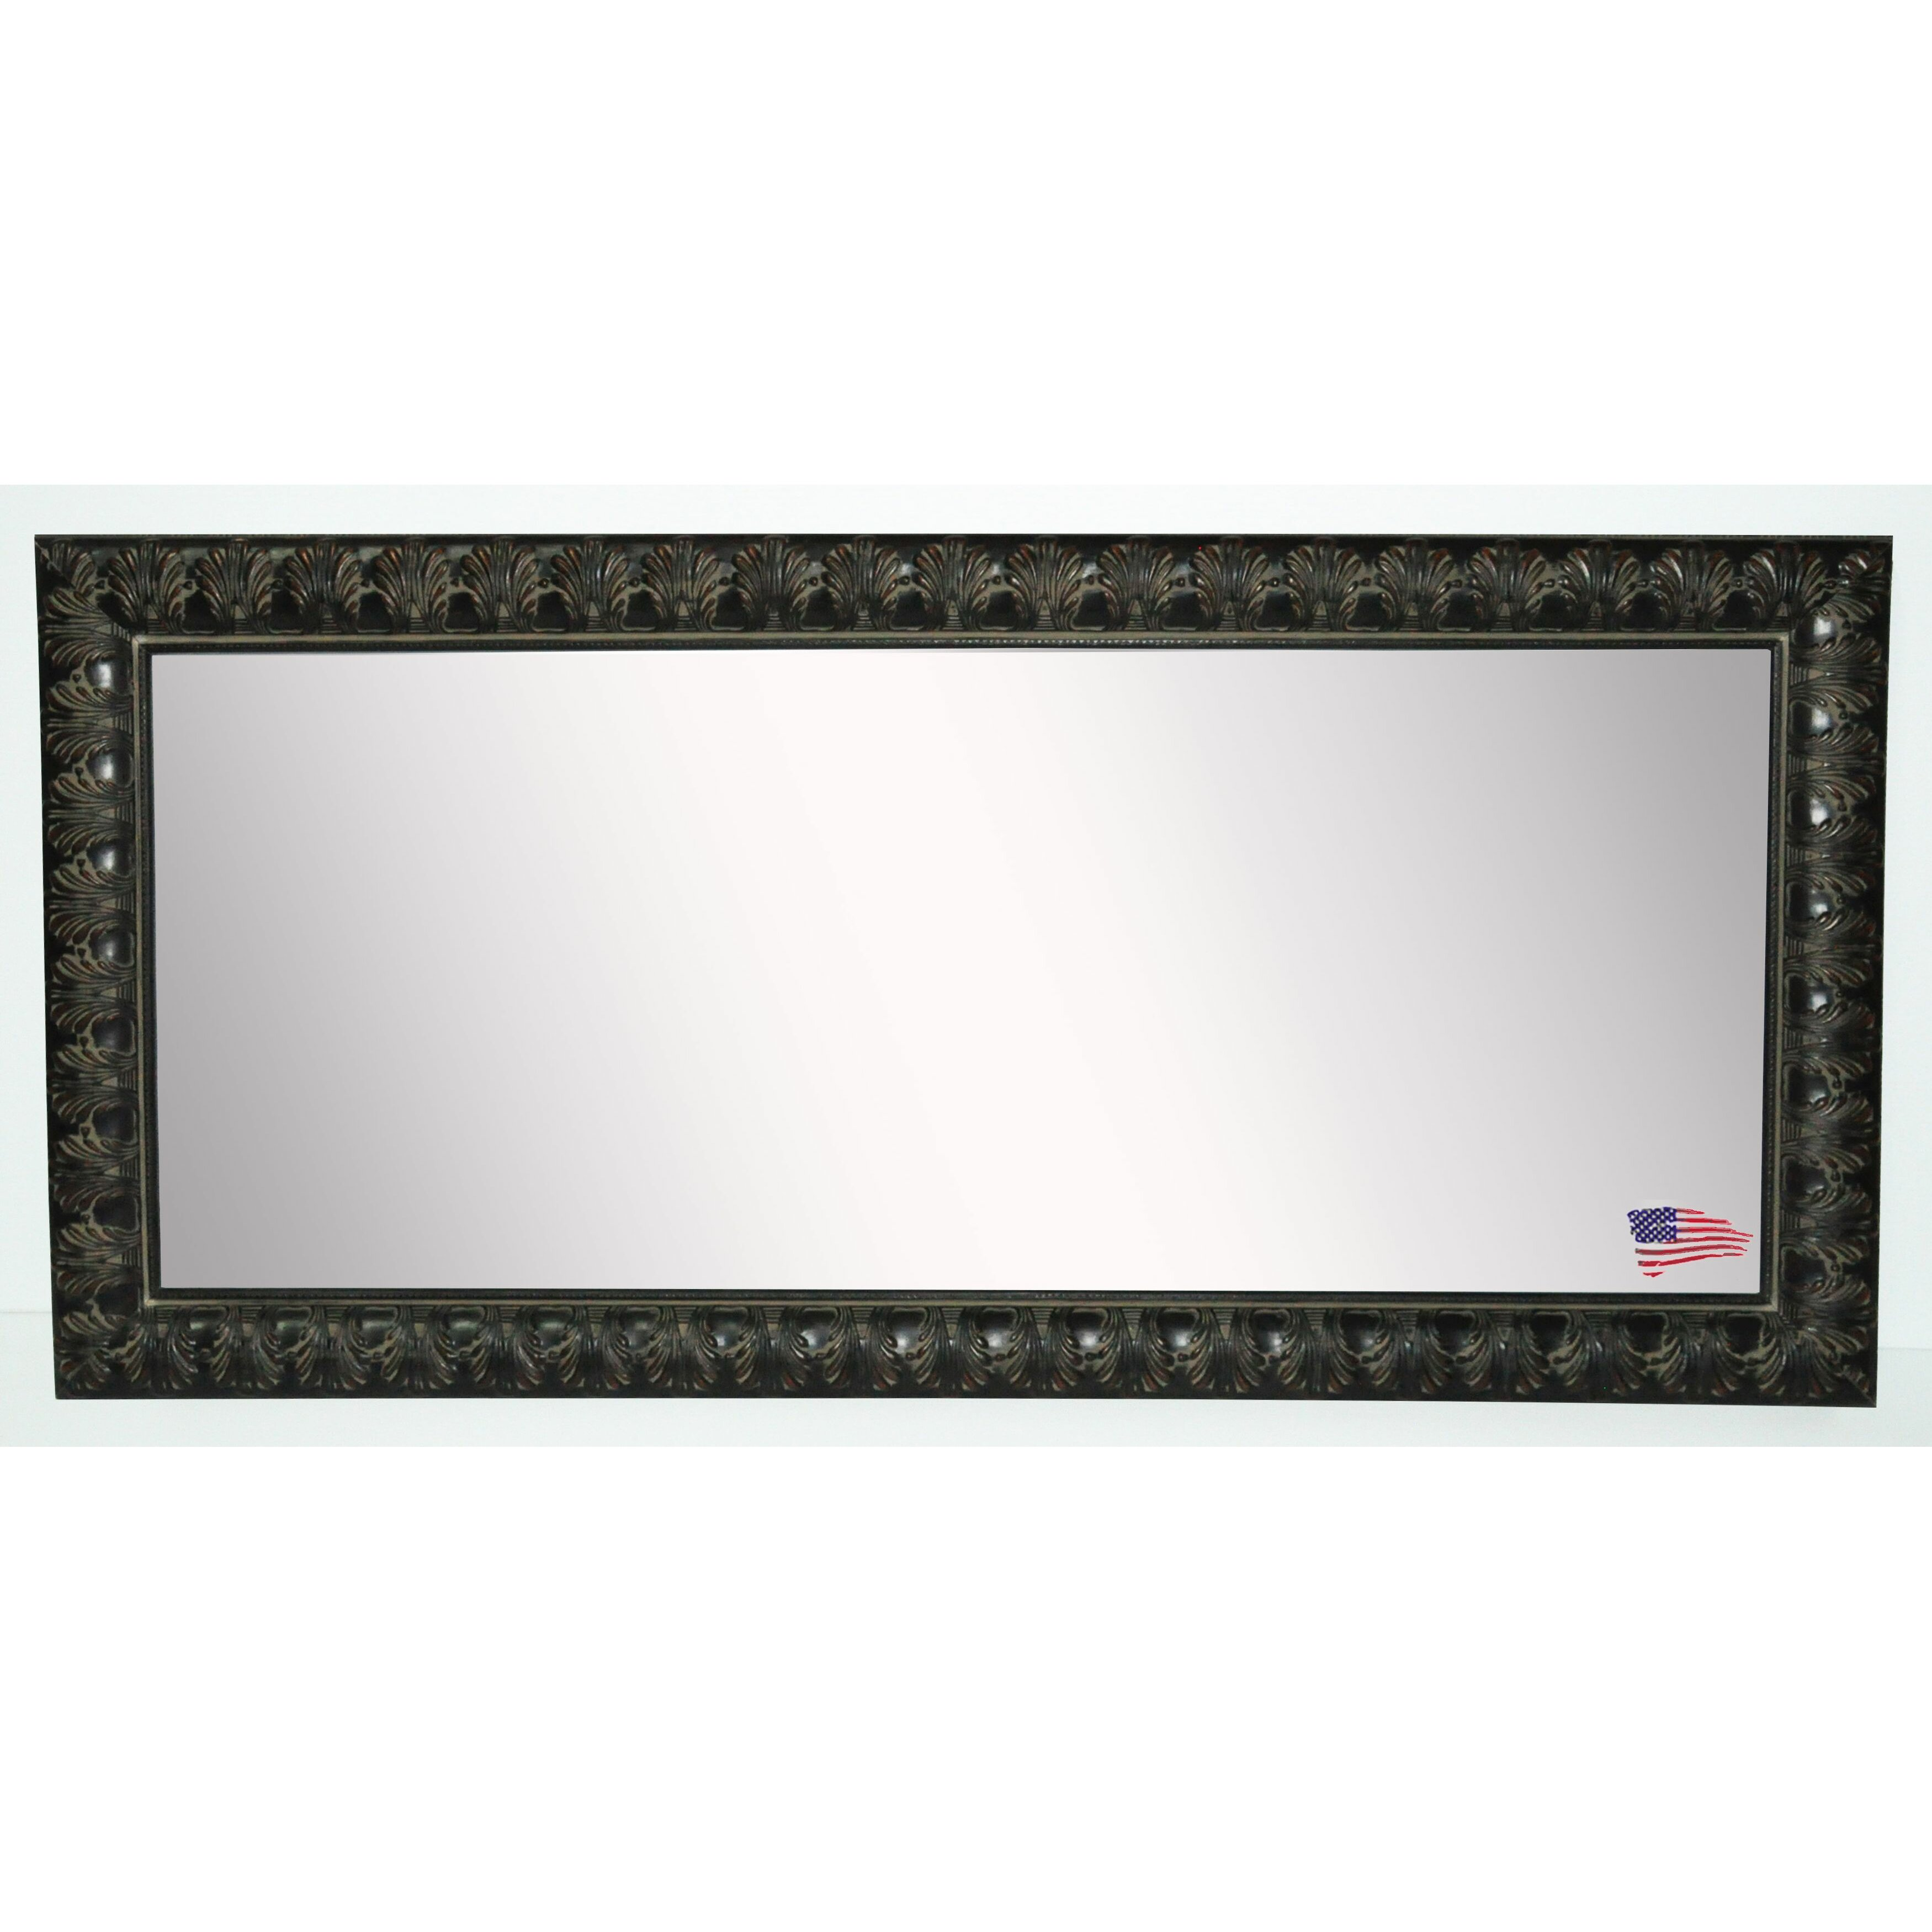 Rayne mirrors feathered accent double vanity wall mirror for Accent wall mirrors